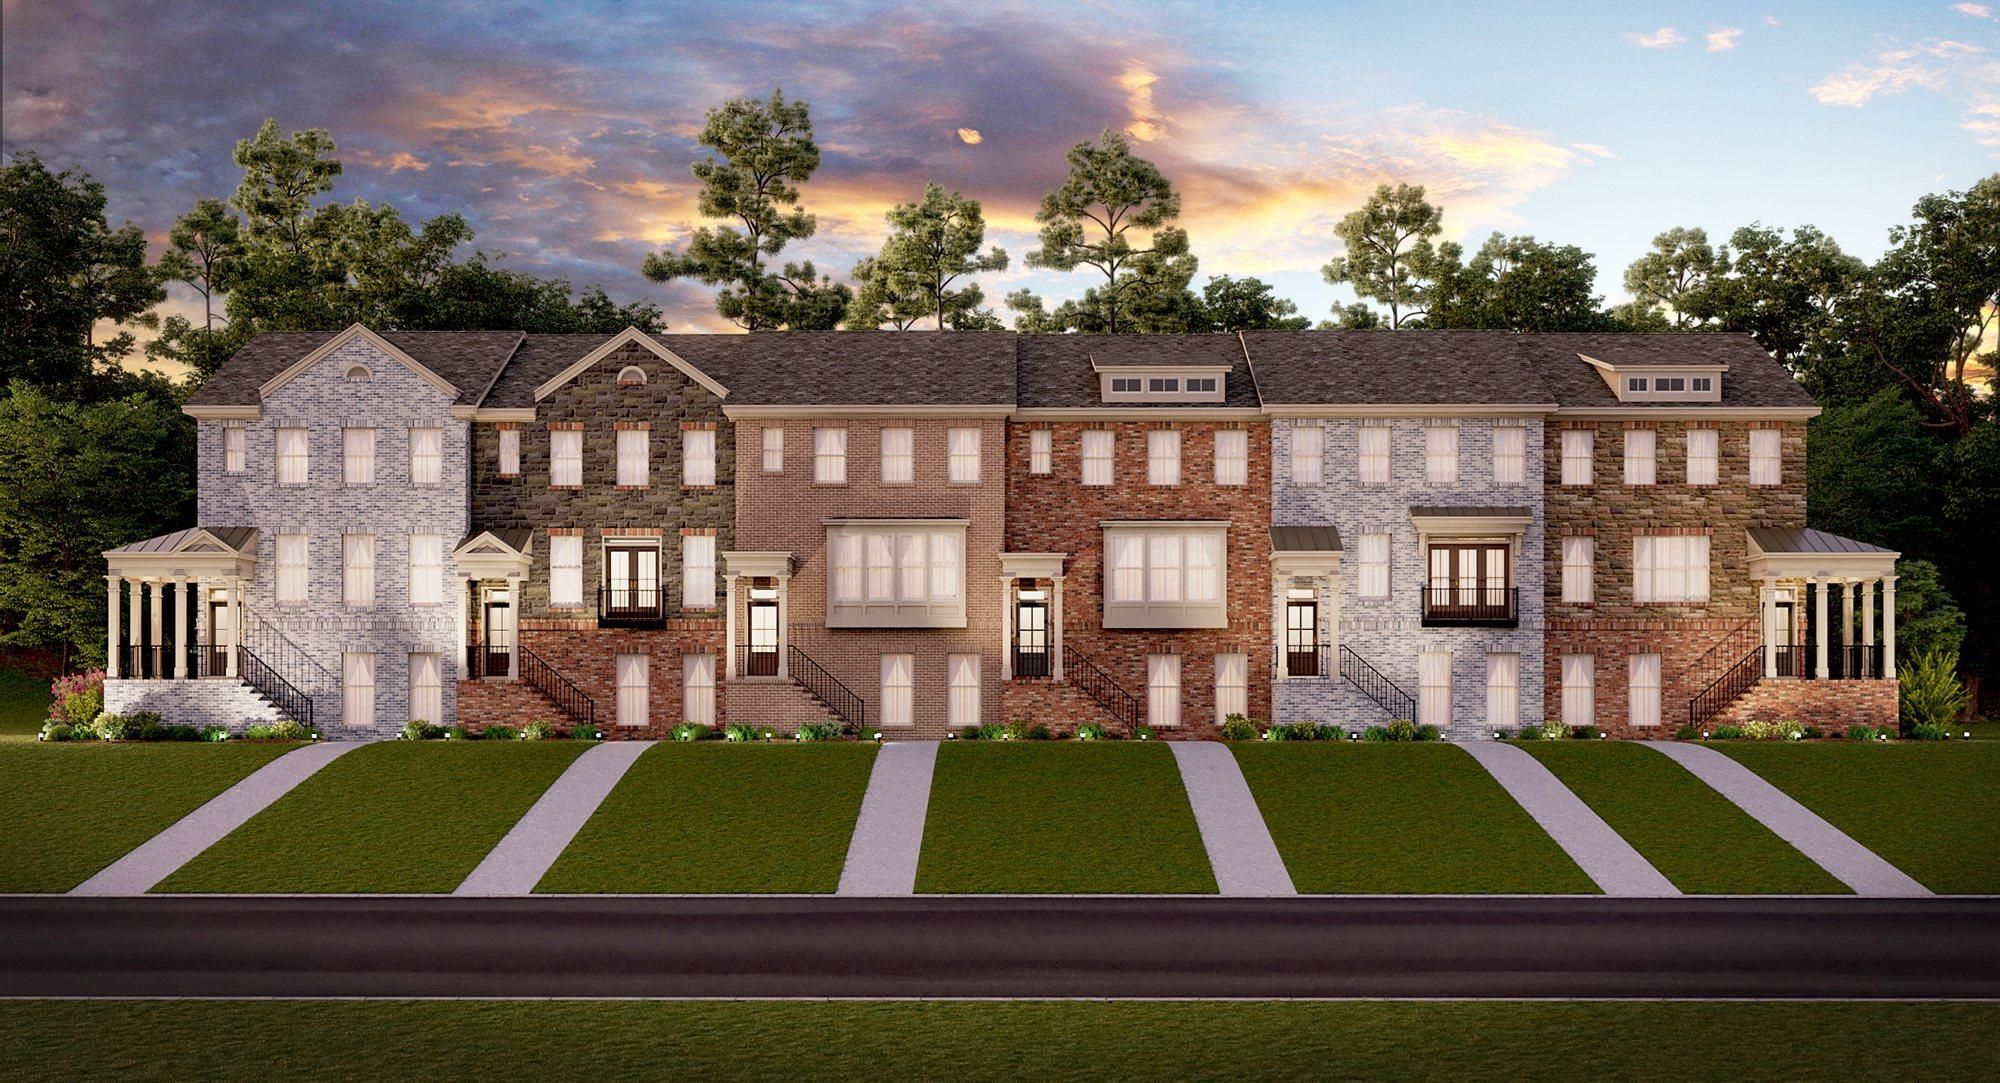 Northaven By Lennar New Homes For Sale Suwanee Ga 7 Photos